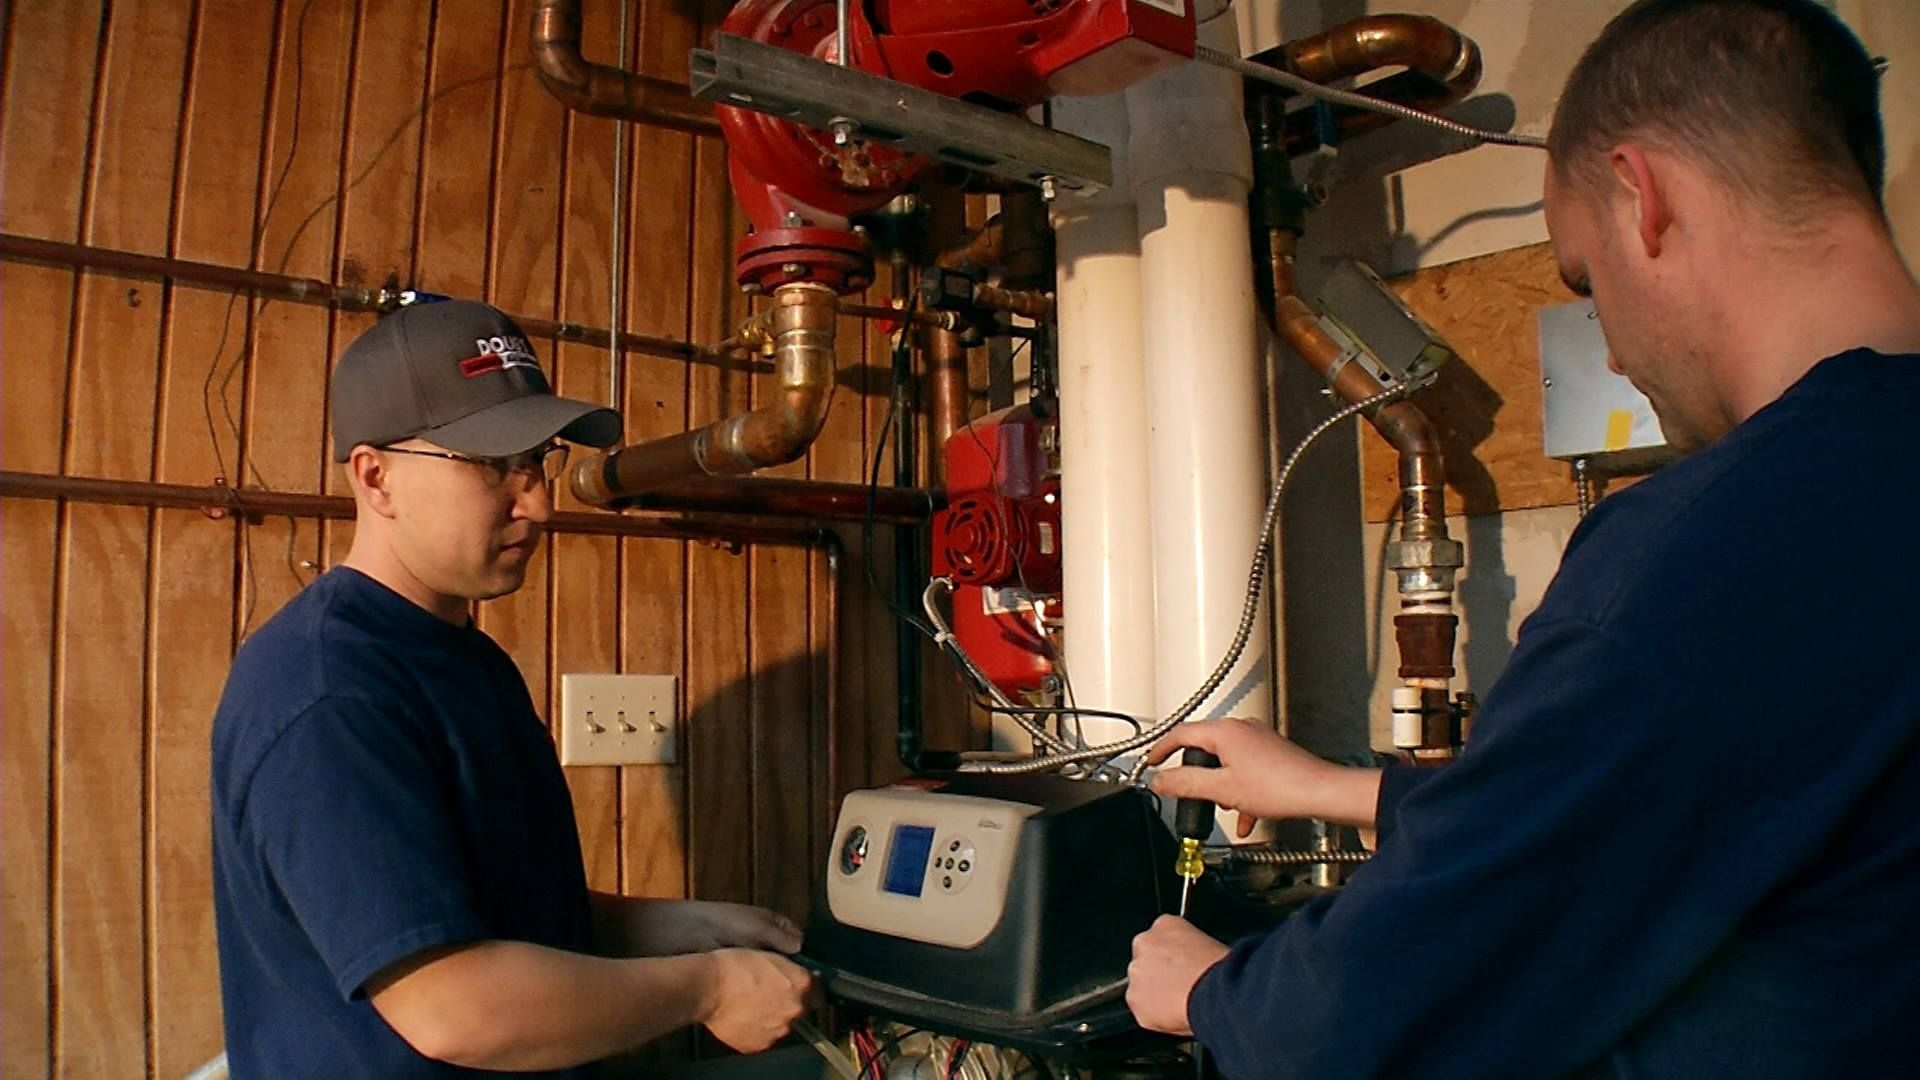 Doug S Heating And Air Conditioning Invests In Quality In